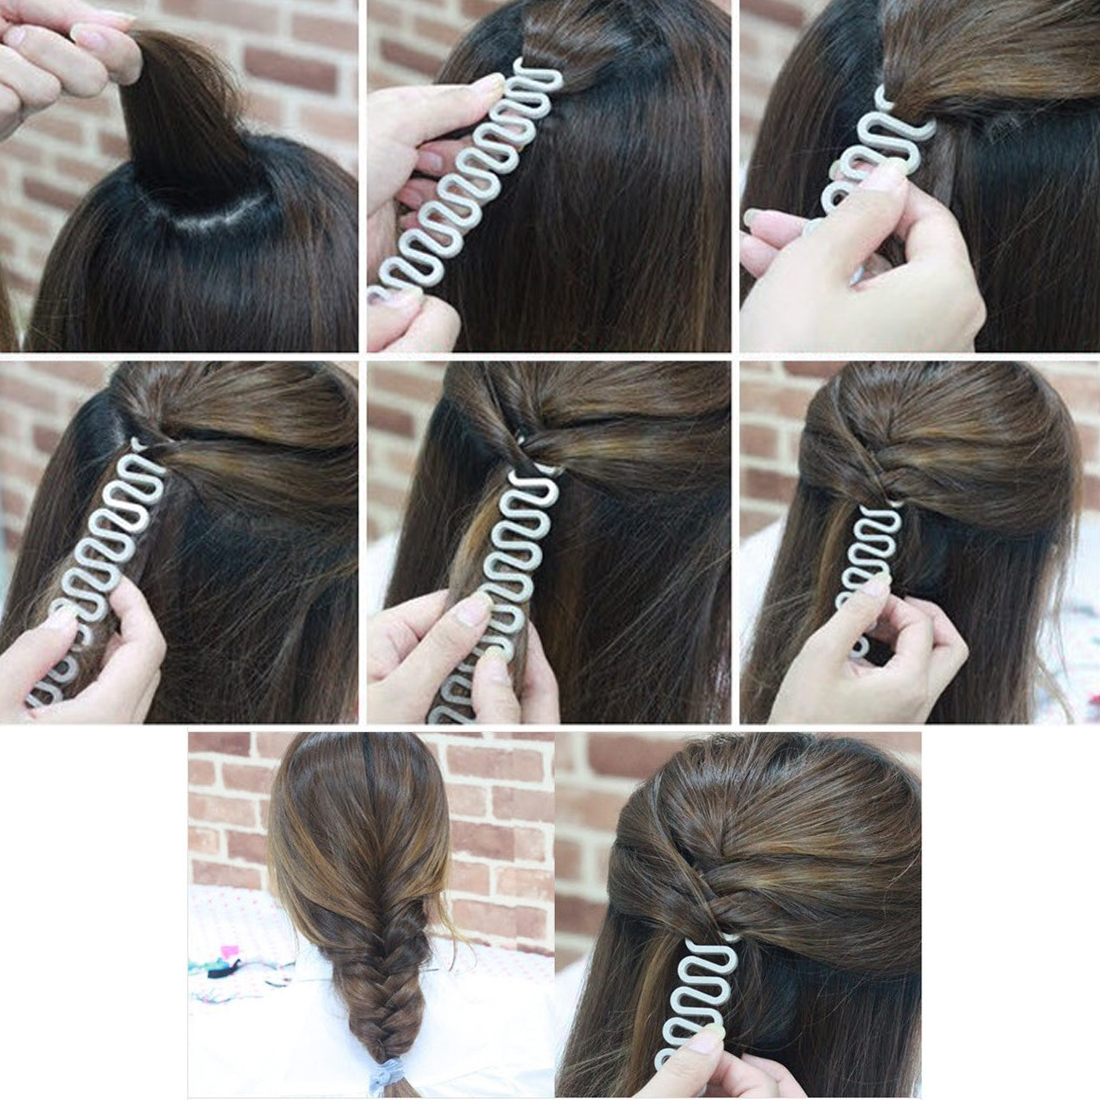 Diferent Sizes Hair Braiding Tool Fish Bone Braider Roller Twist Styling Bun Maker Weave Roller Band Hair Styling Hairdressing